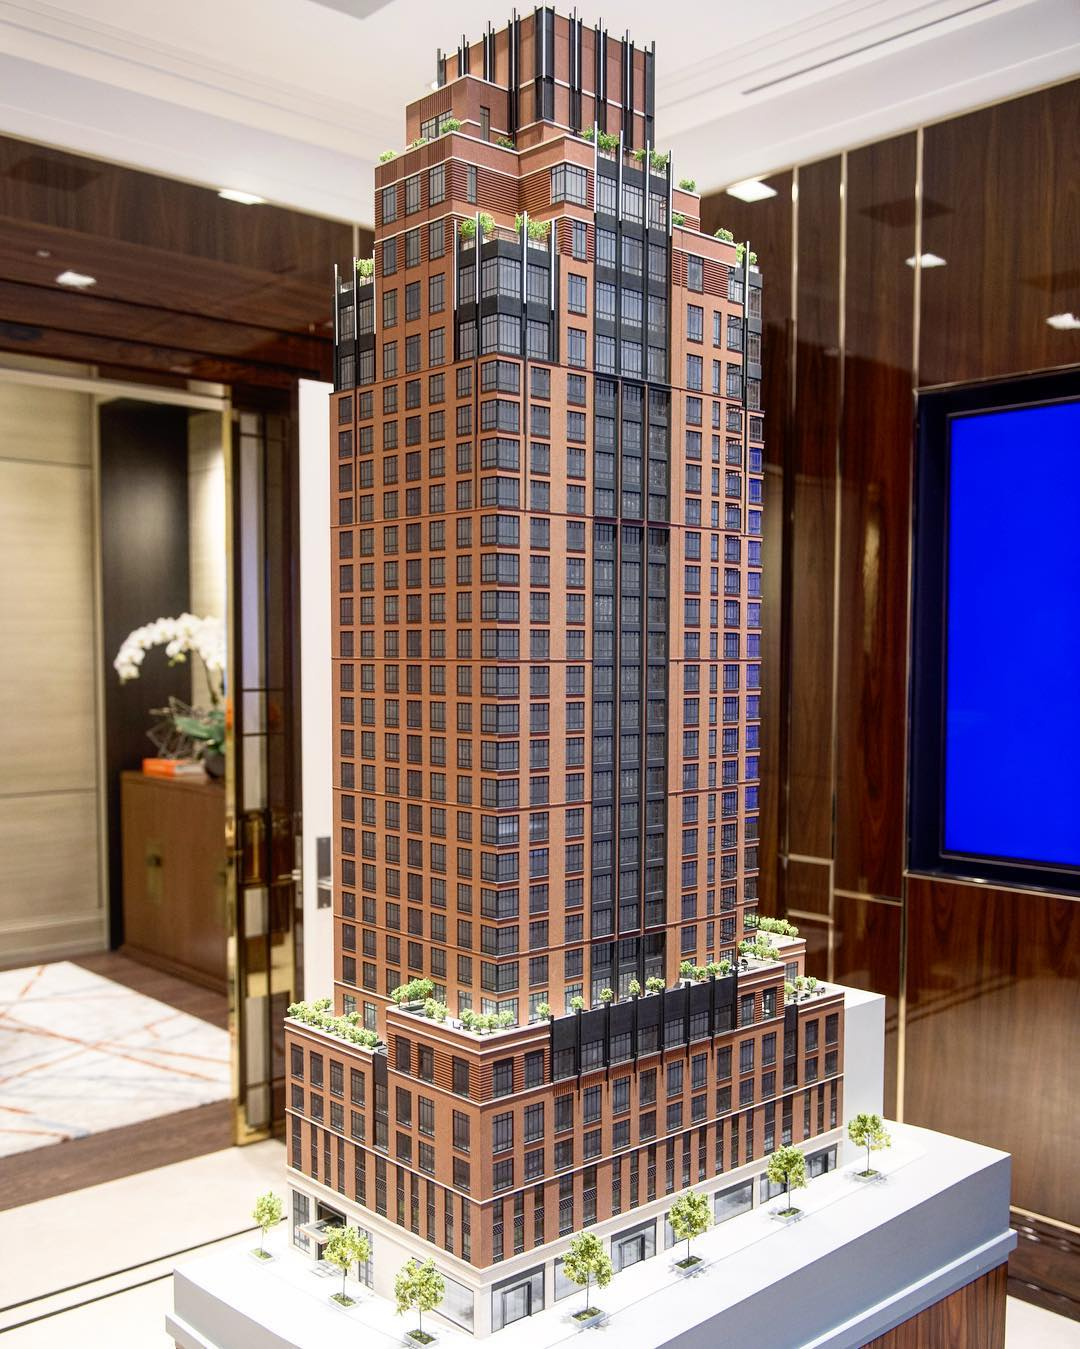 Mixed-Use Tower Rises to 13th Floor